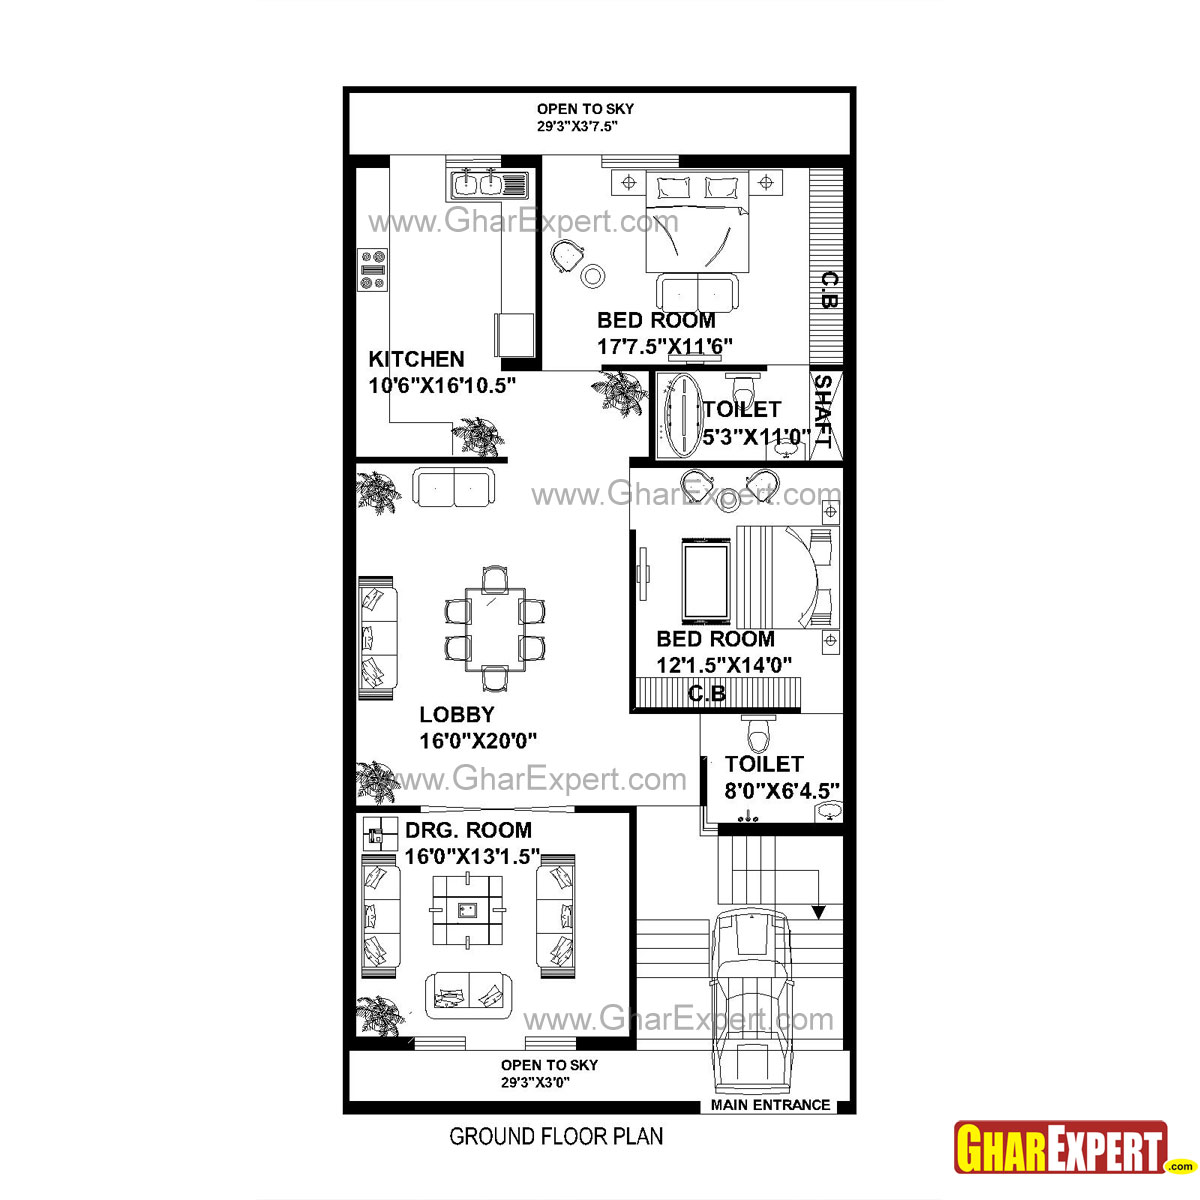 House Plan For 30 Feet By 60 Feet Plot Plot Size 200: 200 yards house design